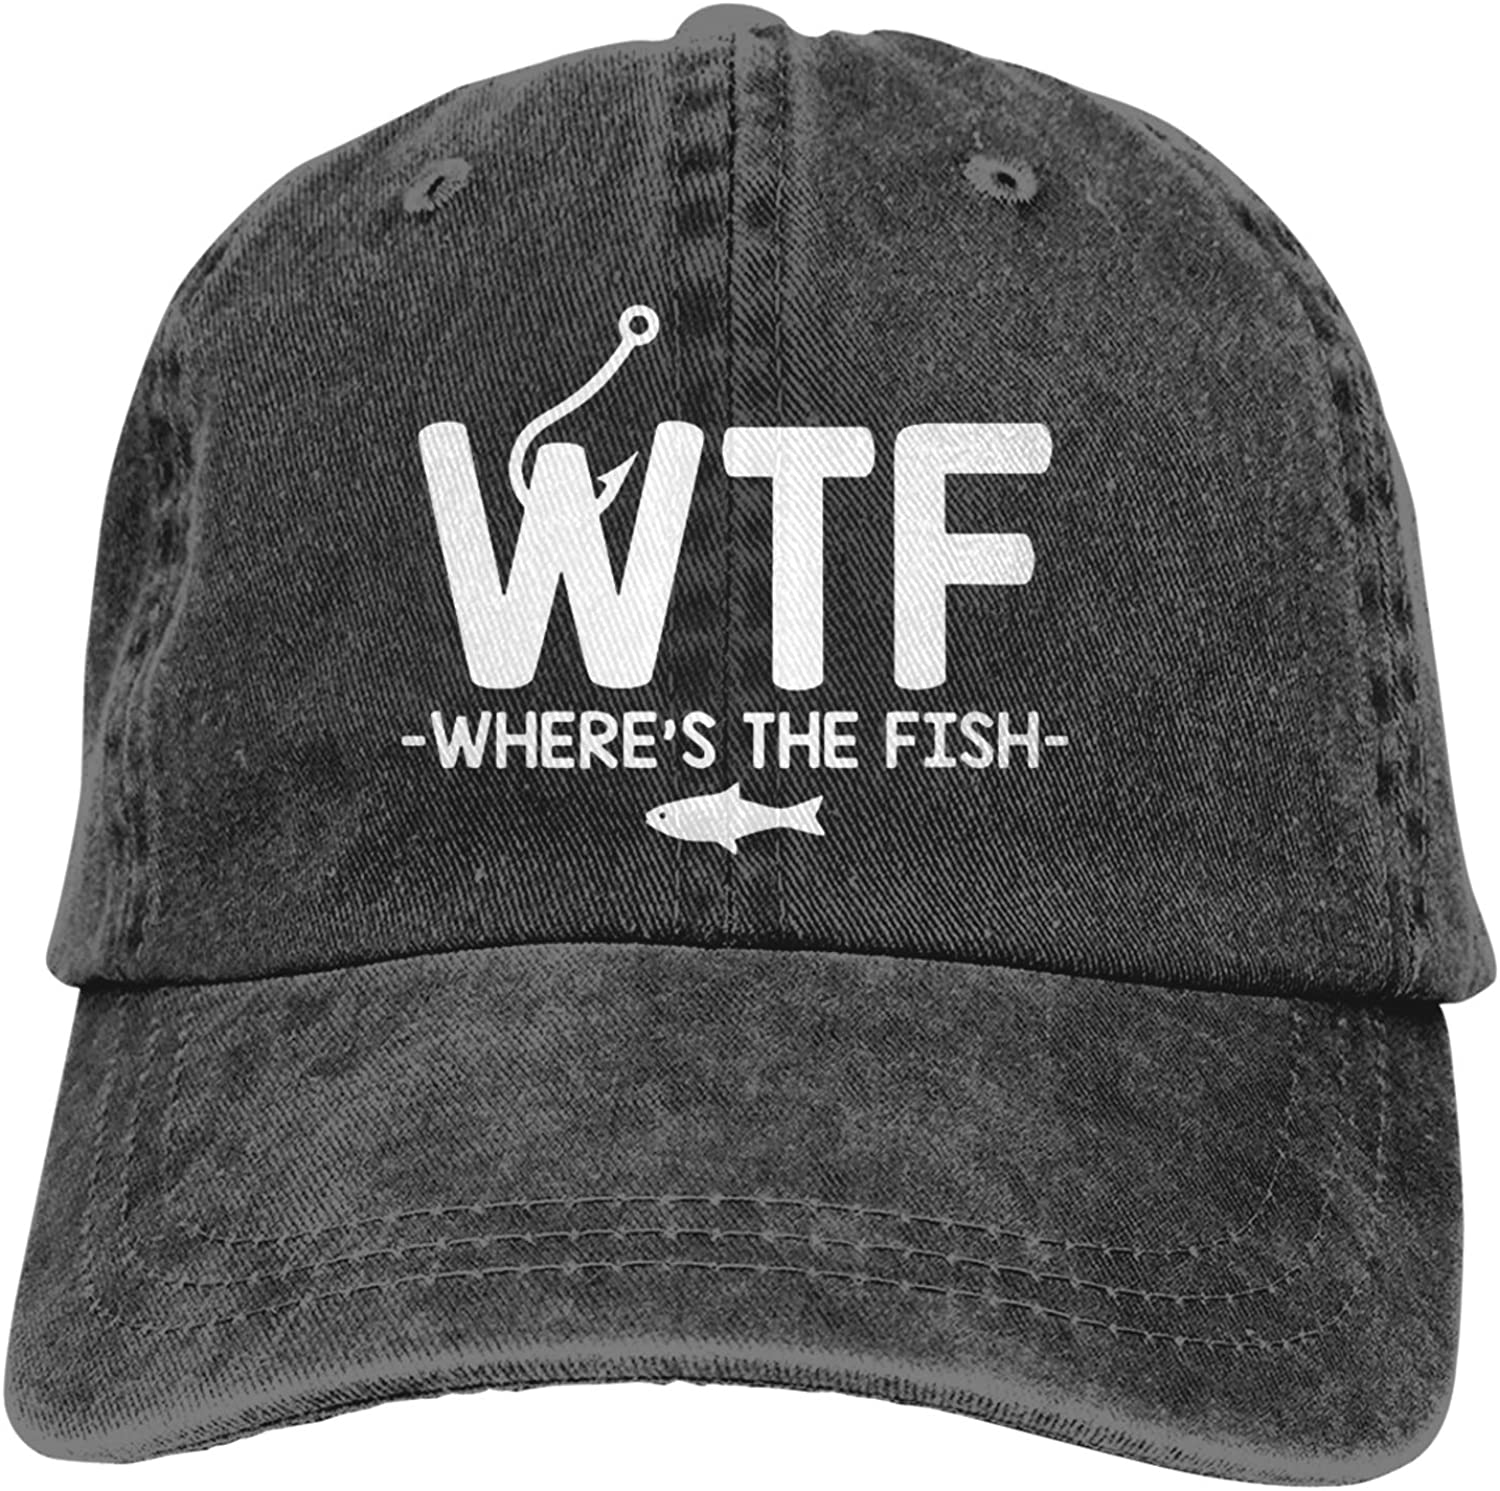 WTF Where's The Fish Baseball Cap Trucker Dad Hat Breathable Adjustable Fitted Cap for Men Women Black